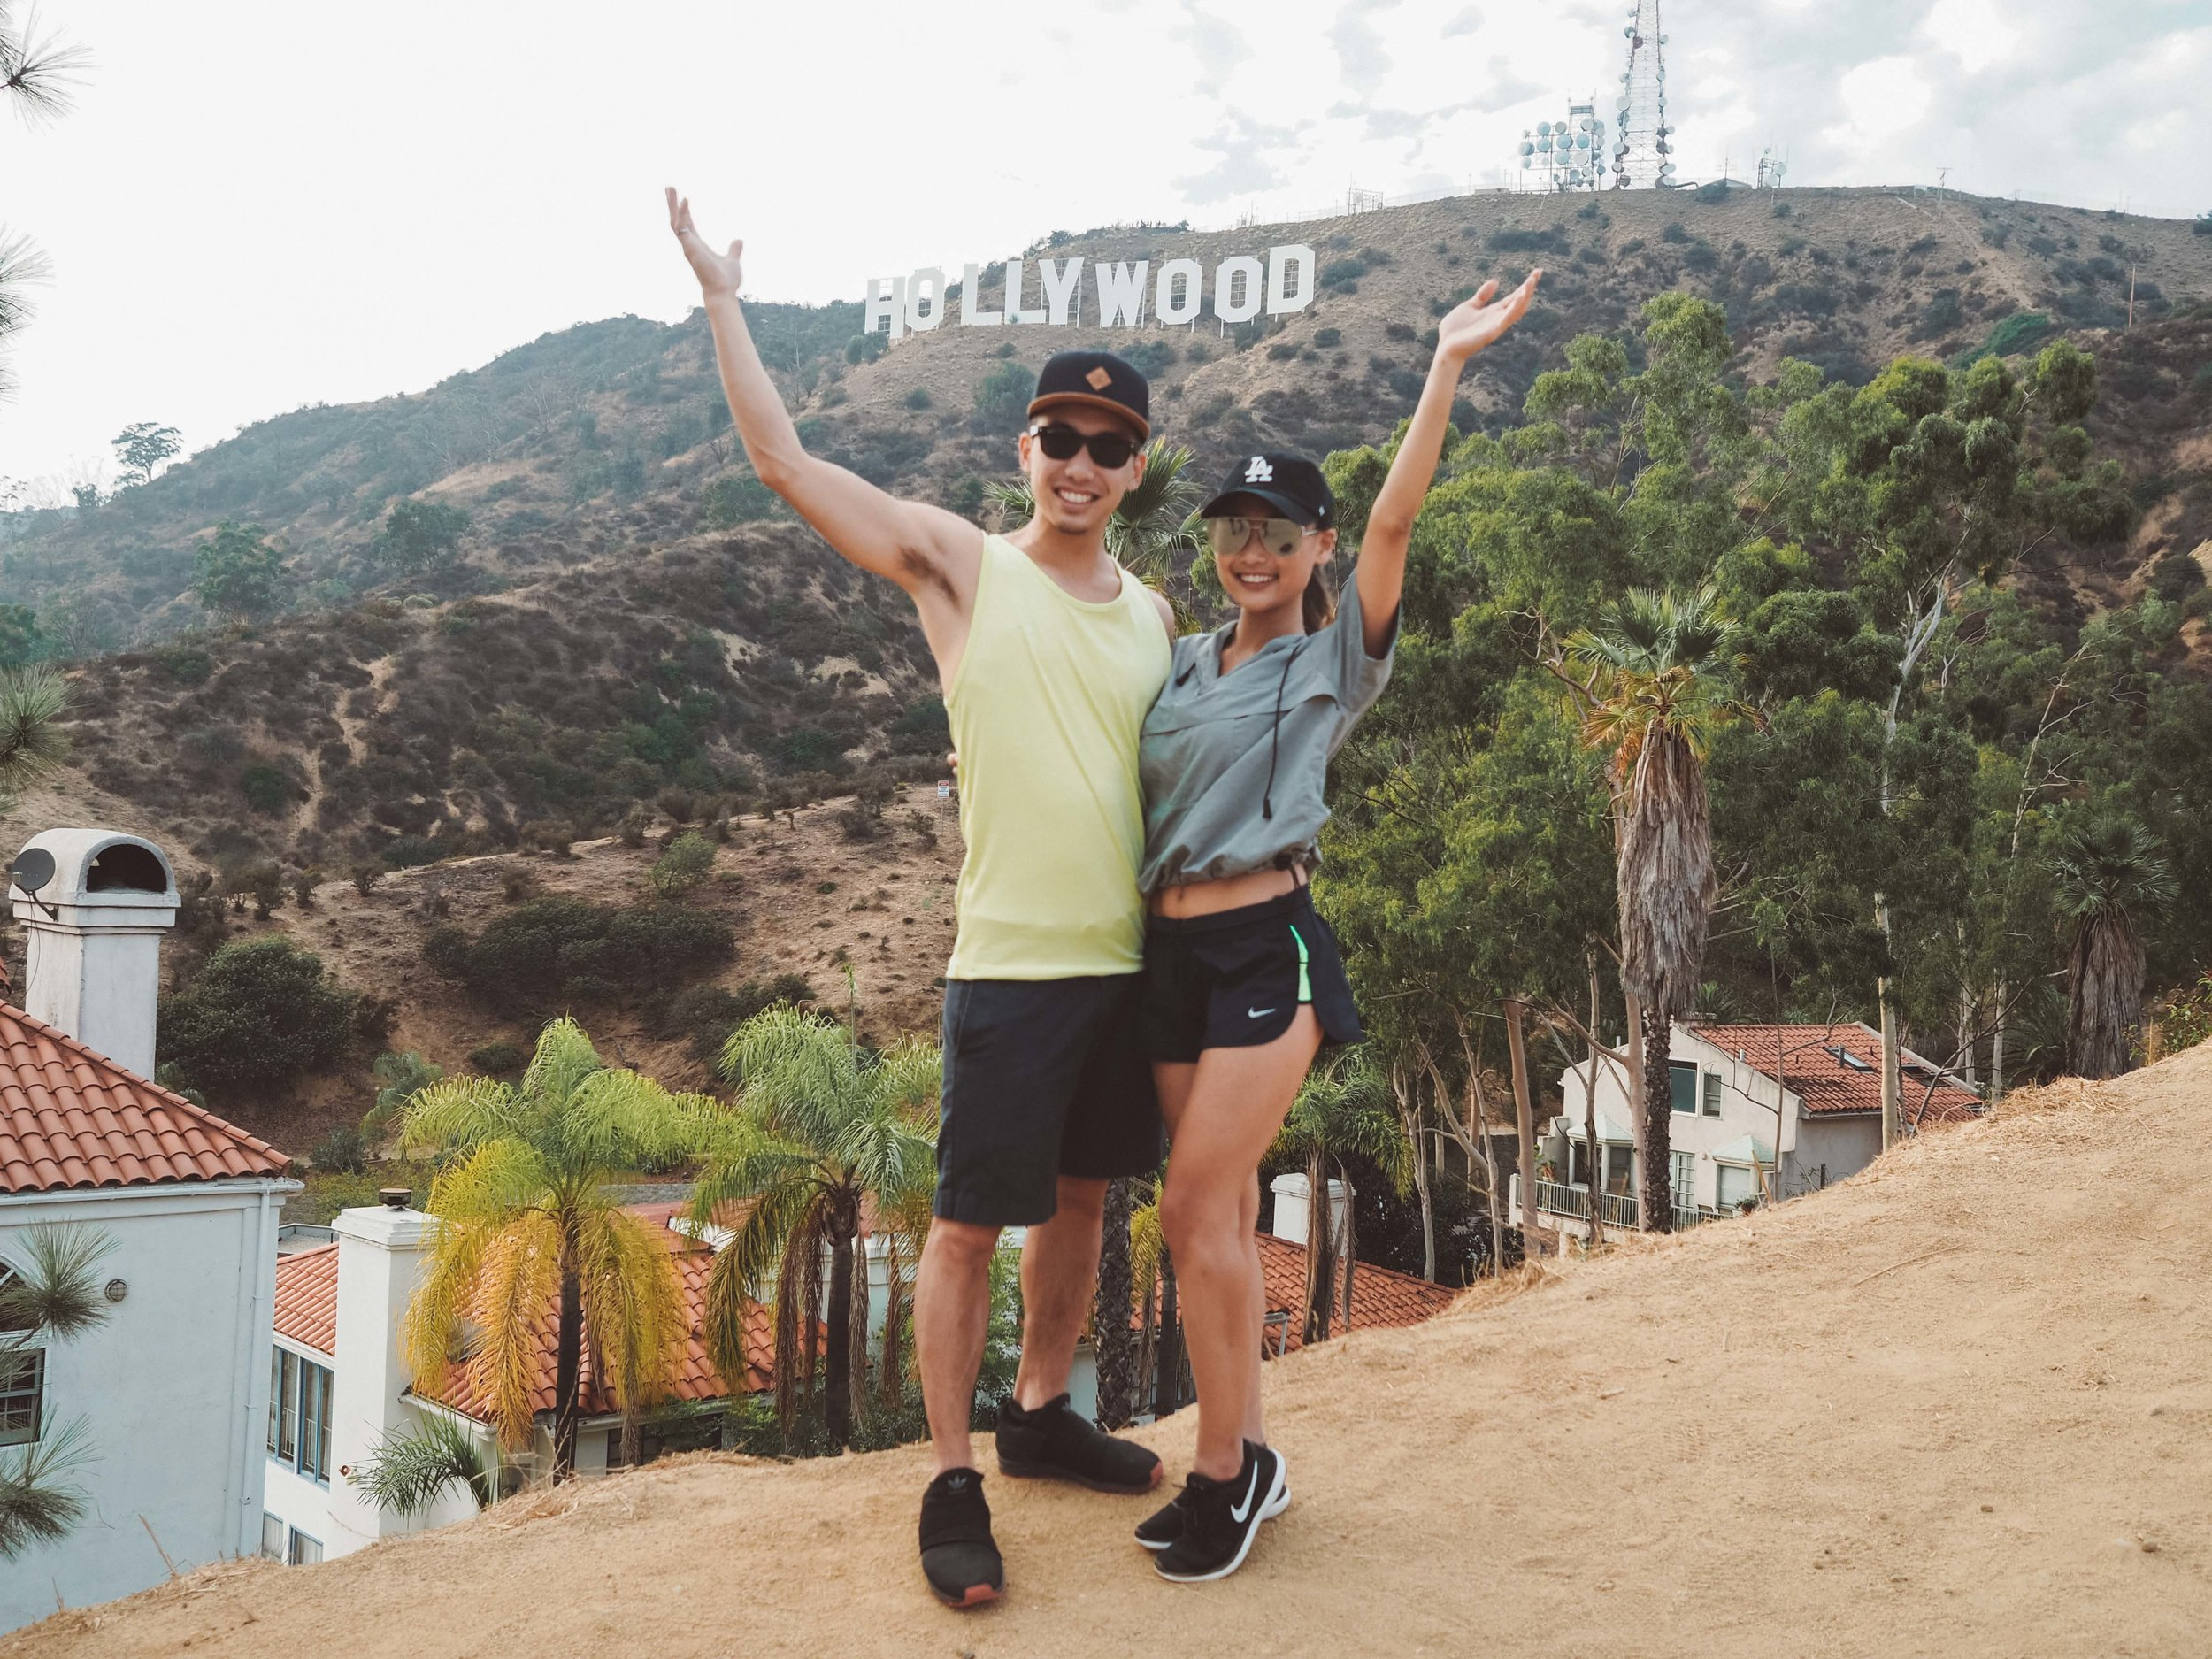 Scenic point 1: Front of the Hollywood Sign